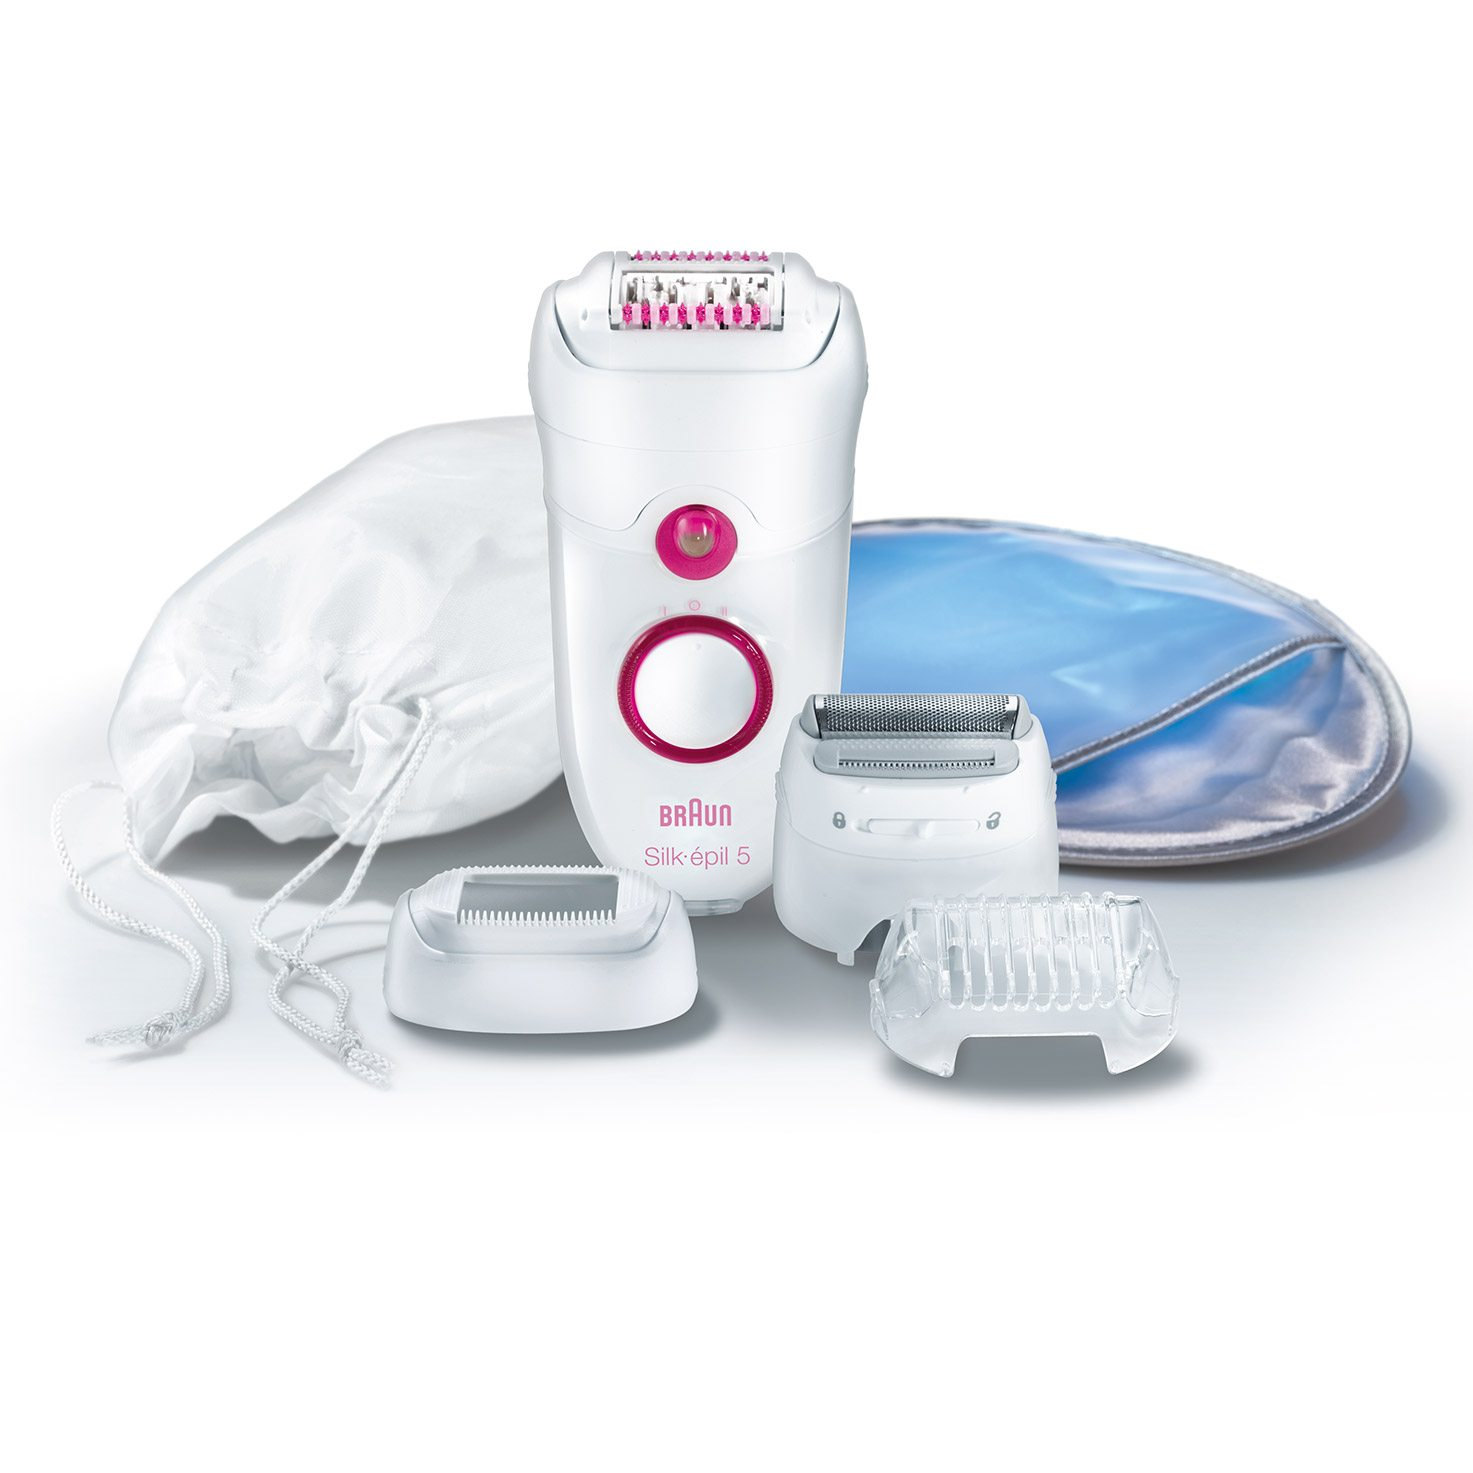 Silk-épil 5 - 5380 Legs and Body Epilator